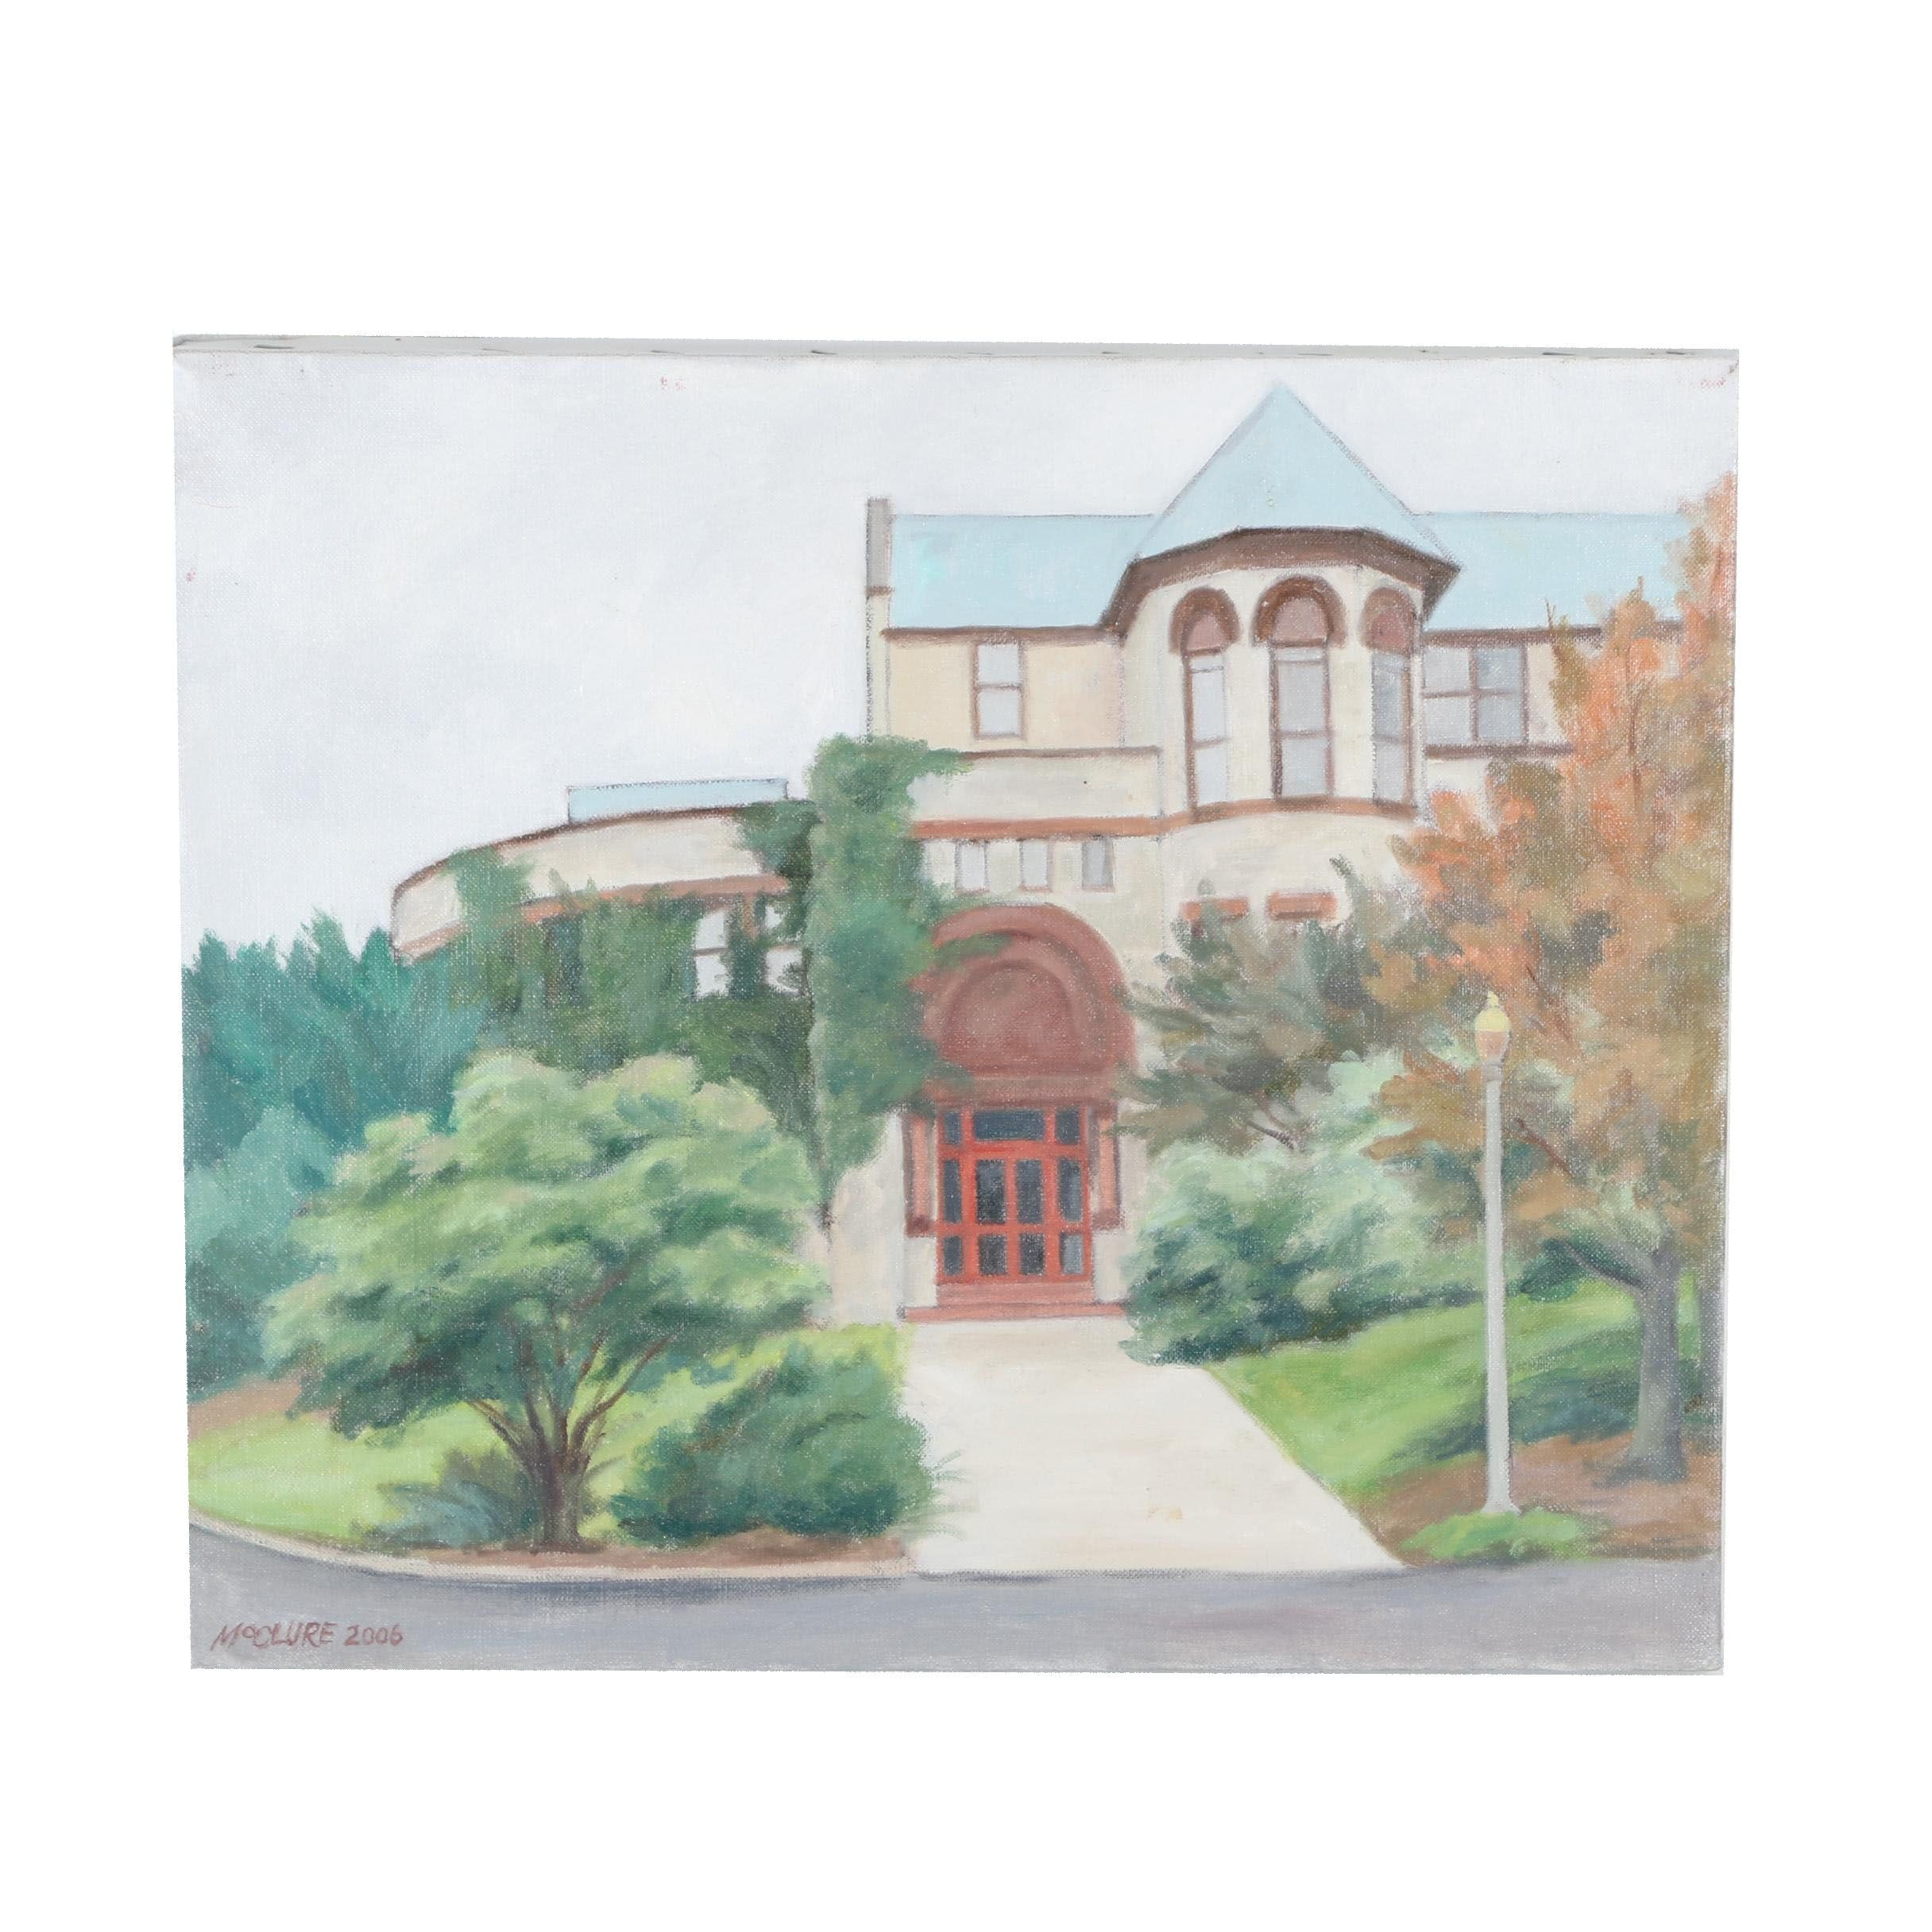 Constance McClure Oil Painting of Cincinnati Art Academy, 2006